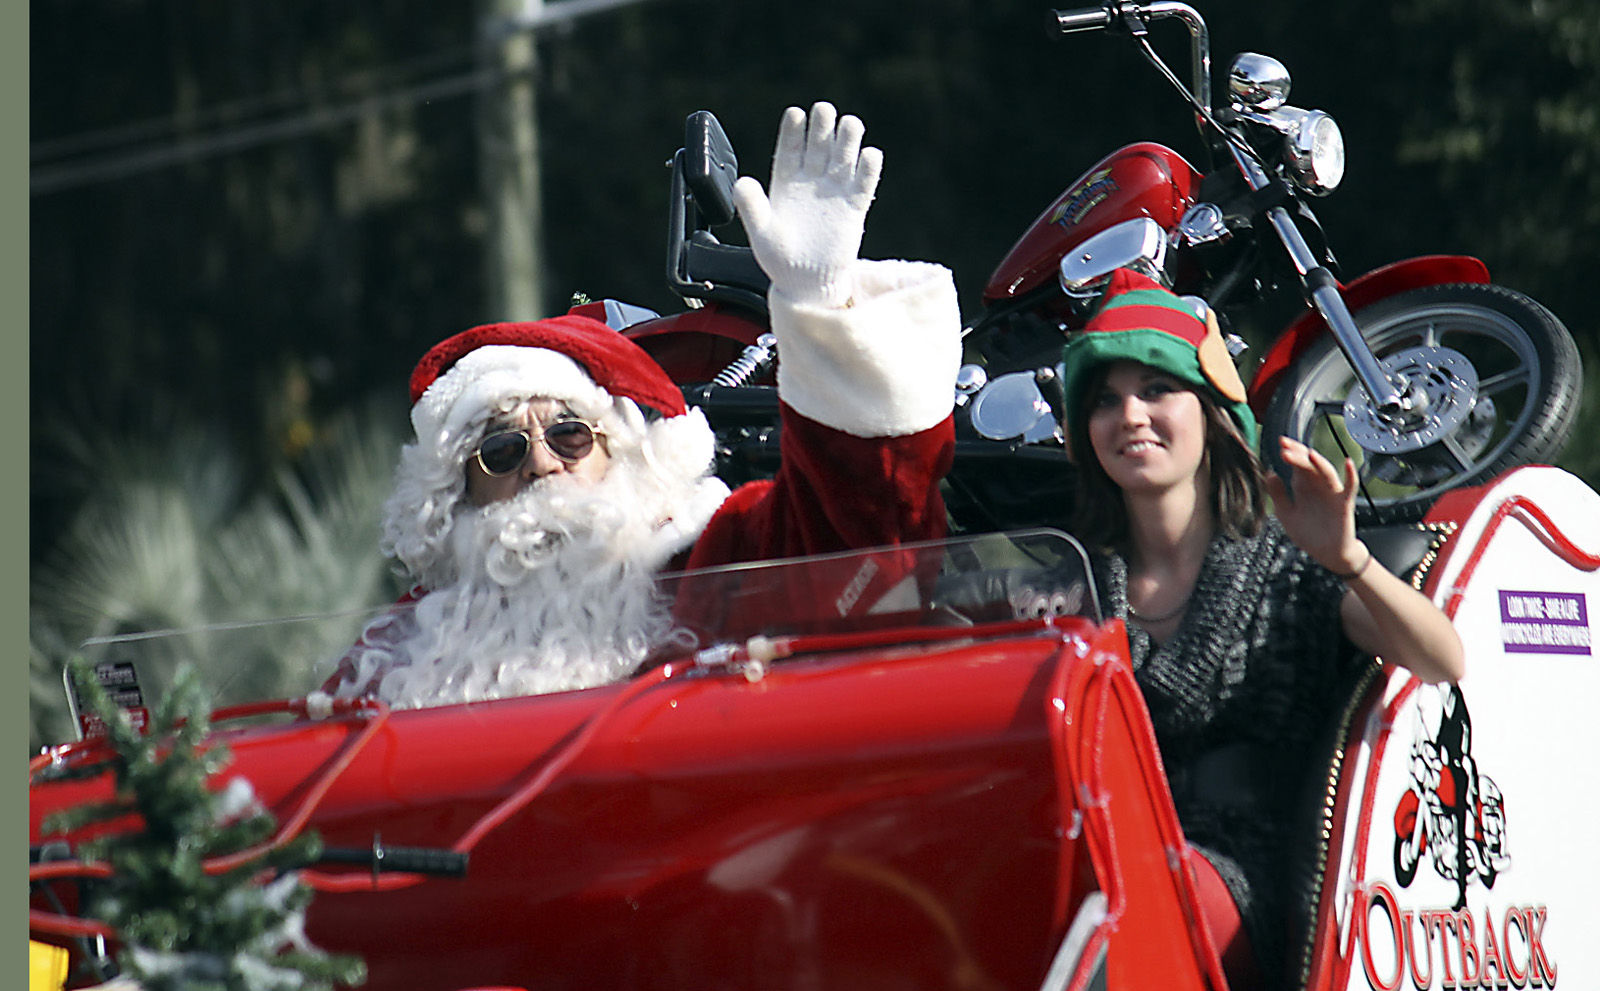 Benefits Of Ride On Toys : Motorcycle toy run benefits empty stocking fund local news